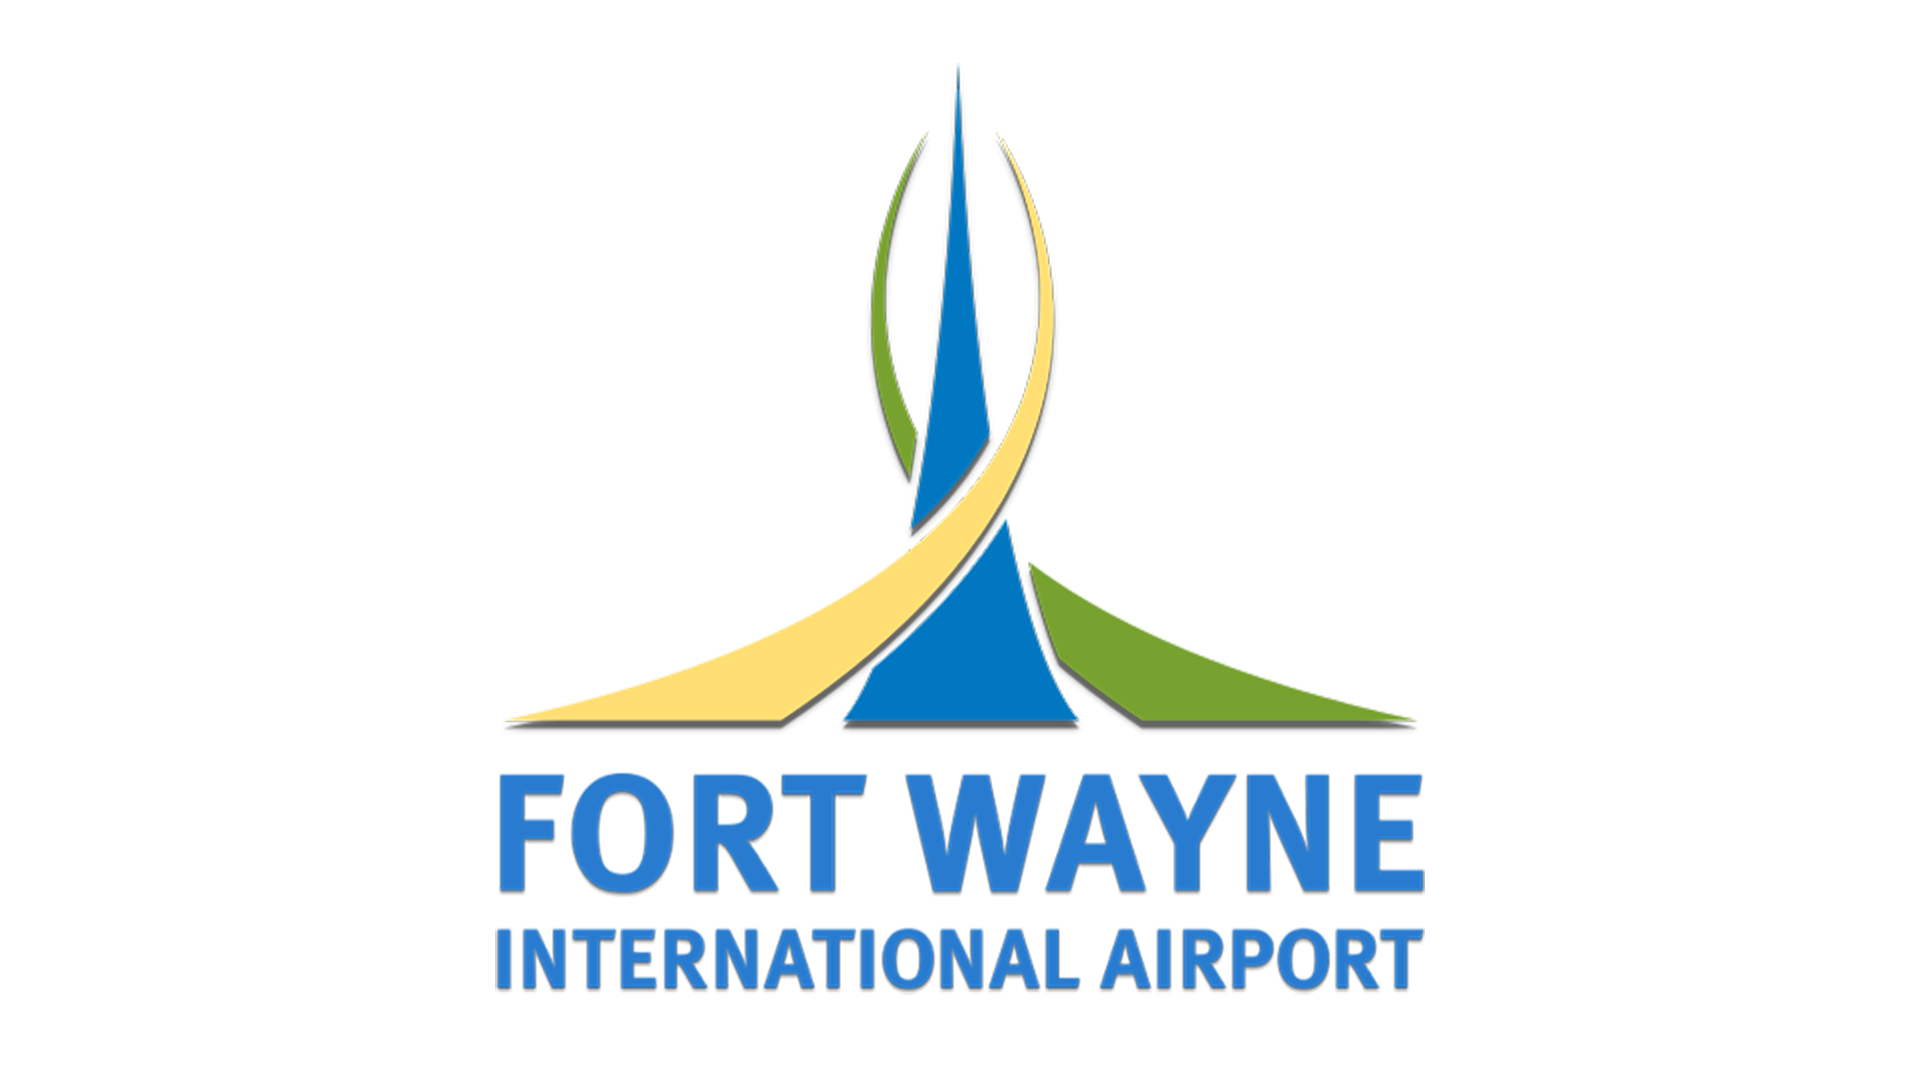 Fort Wayne International Airport